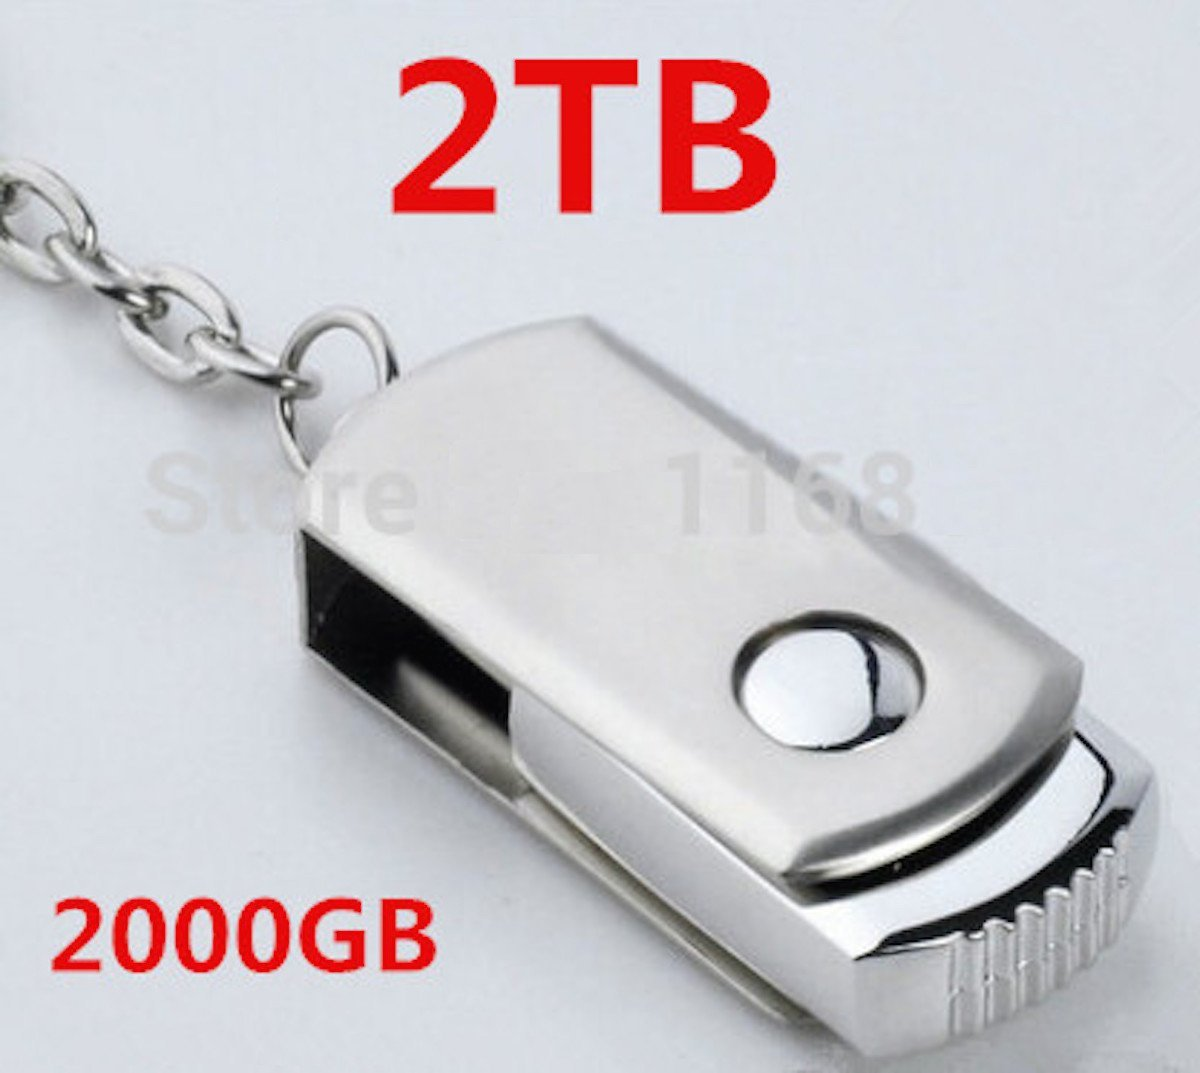 2 TB Flash Drive. Silver Color with Keychain and Build-In Protective cover. FREE Mystery Gift.